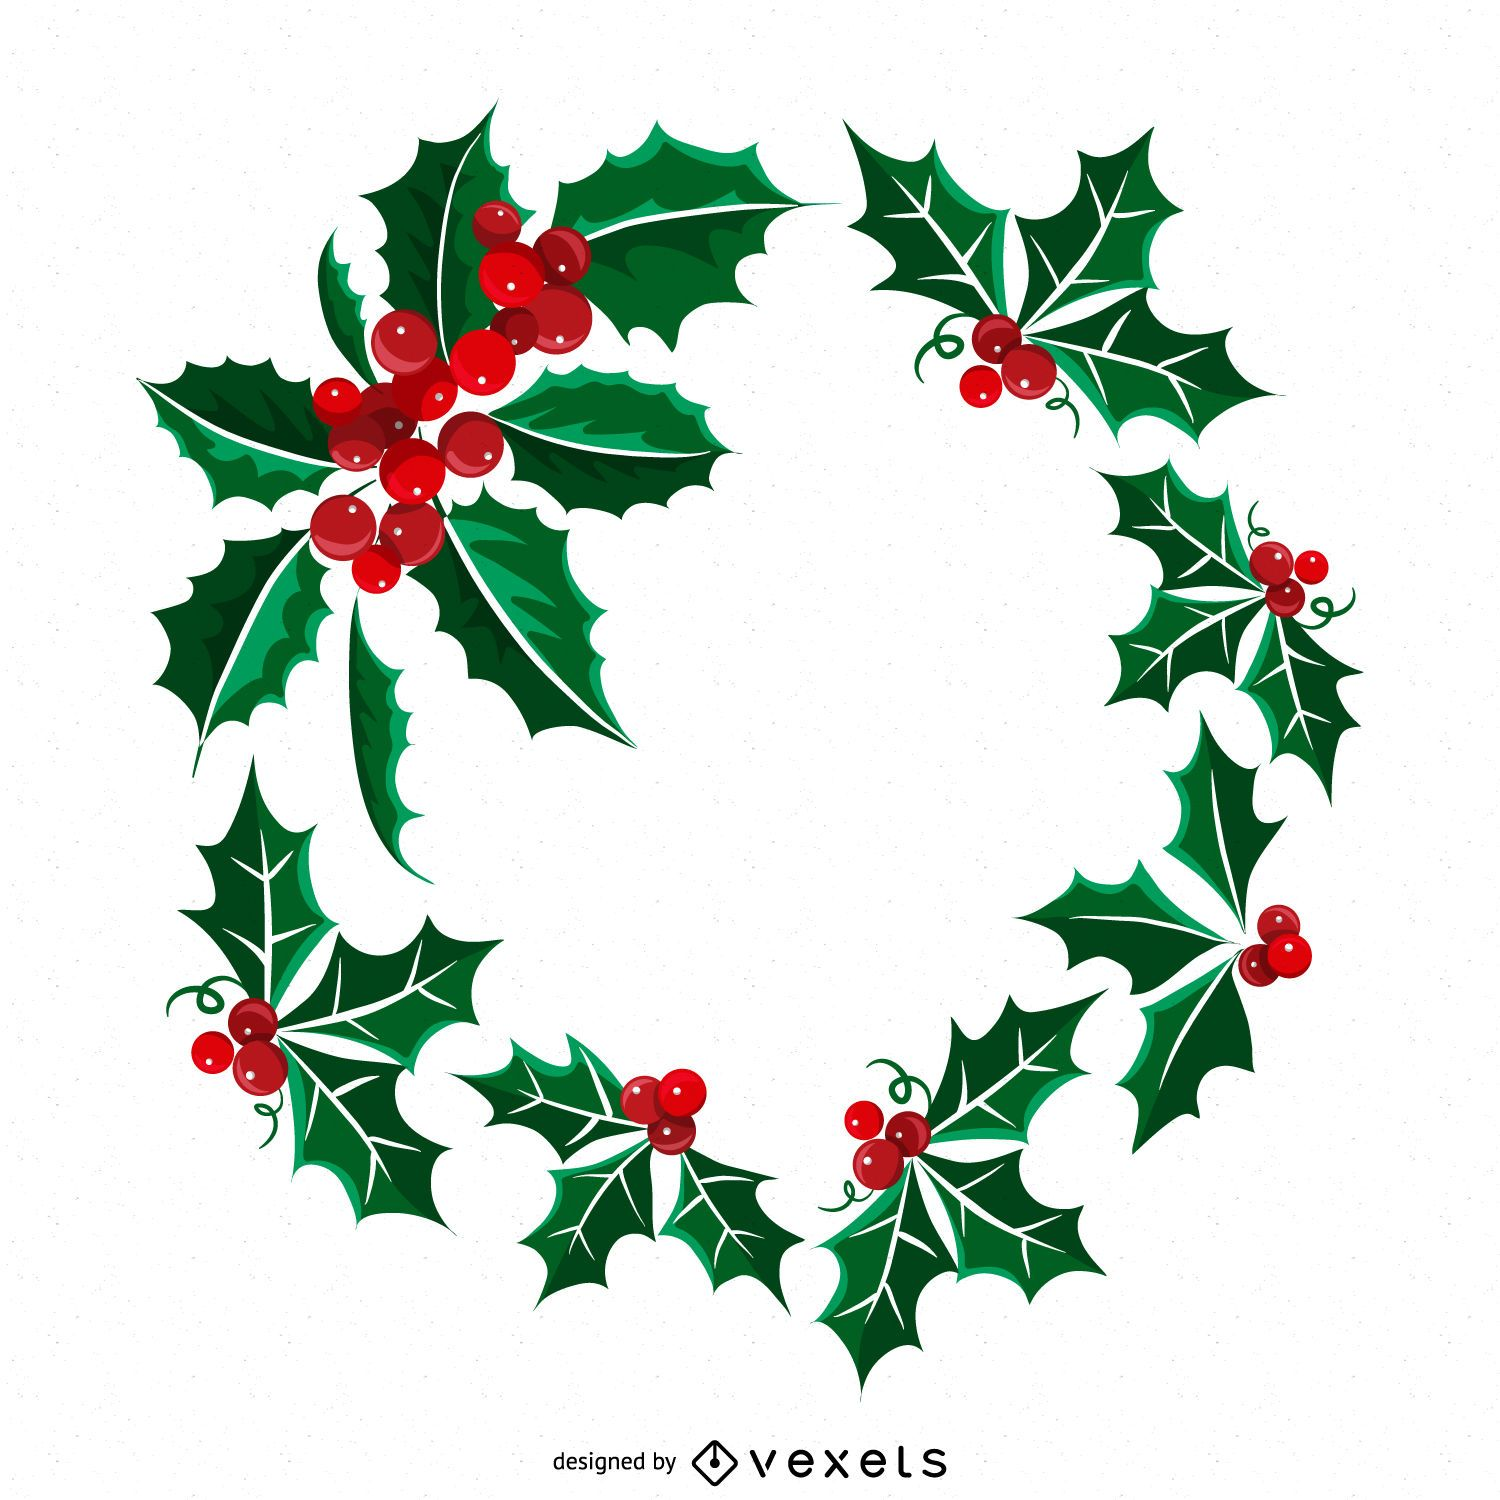 christmas mistletoe wreath illustration - Mistletoe Christmas